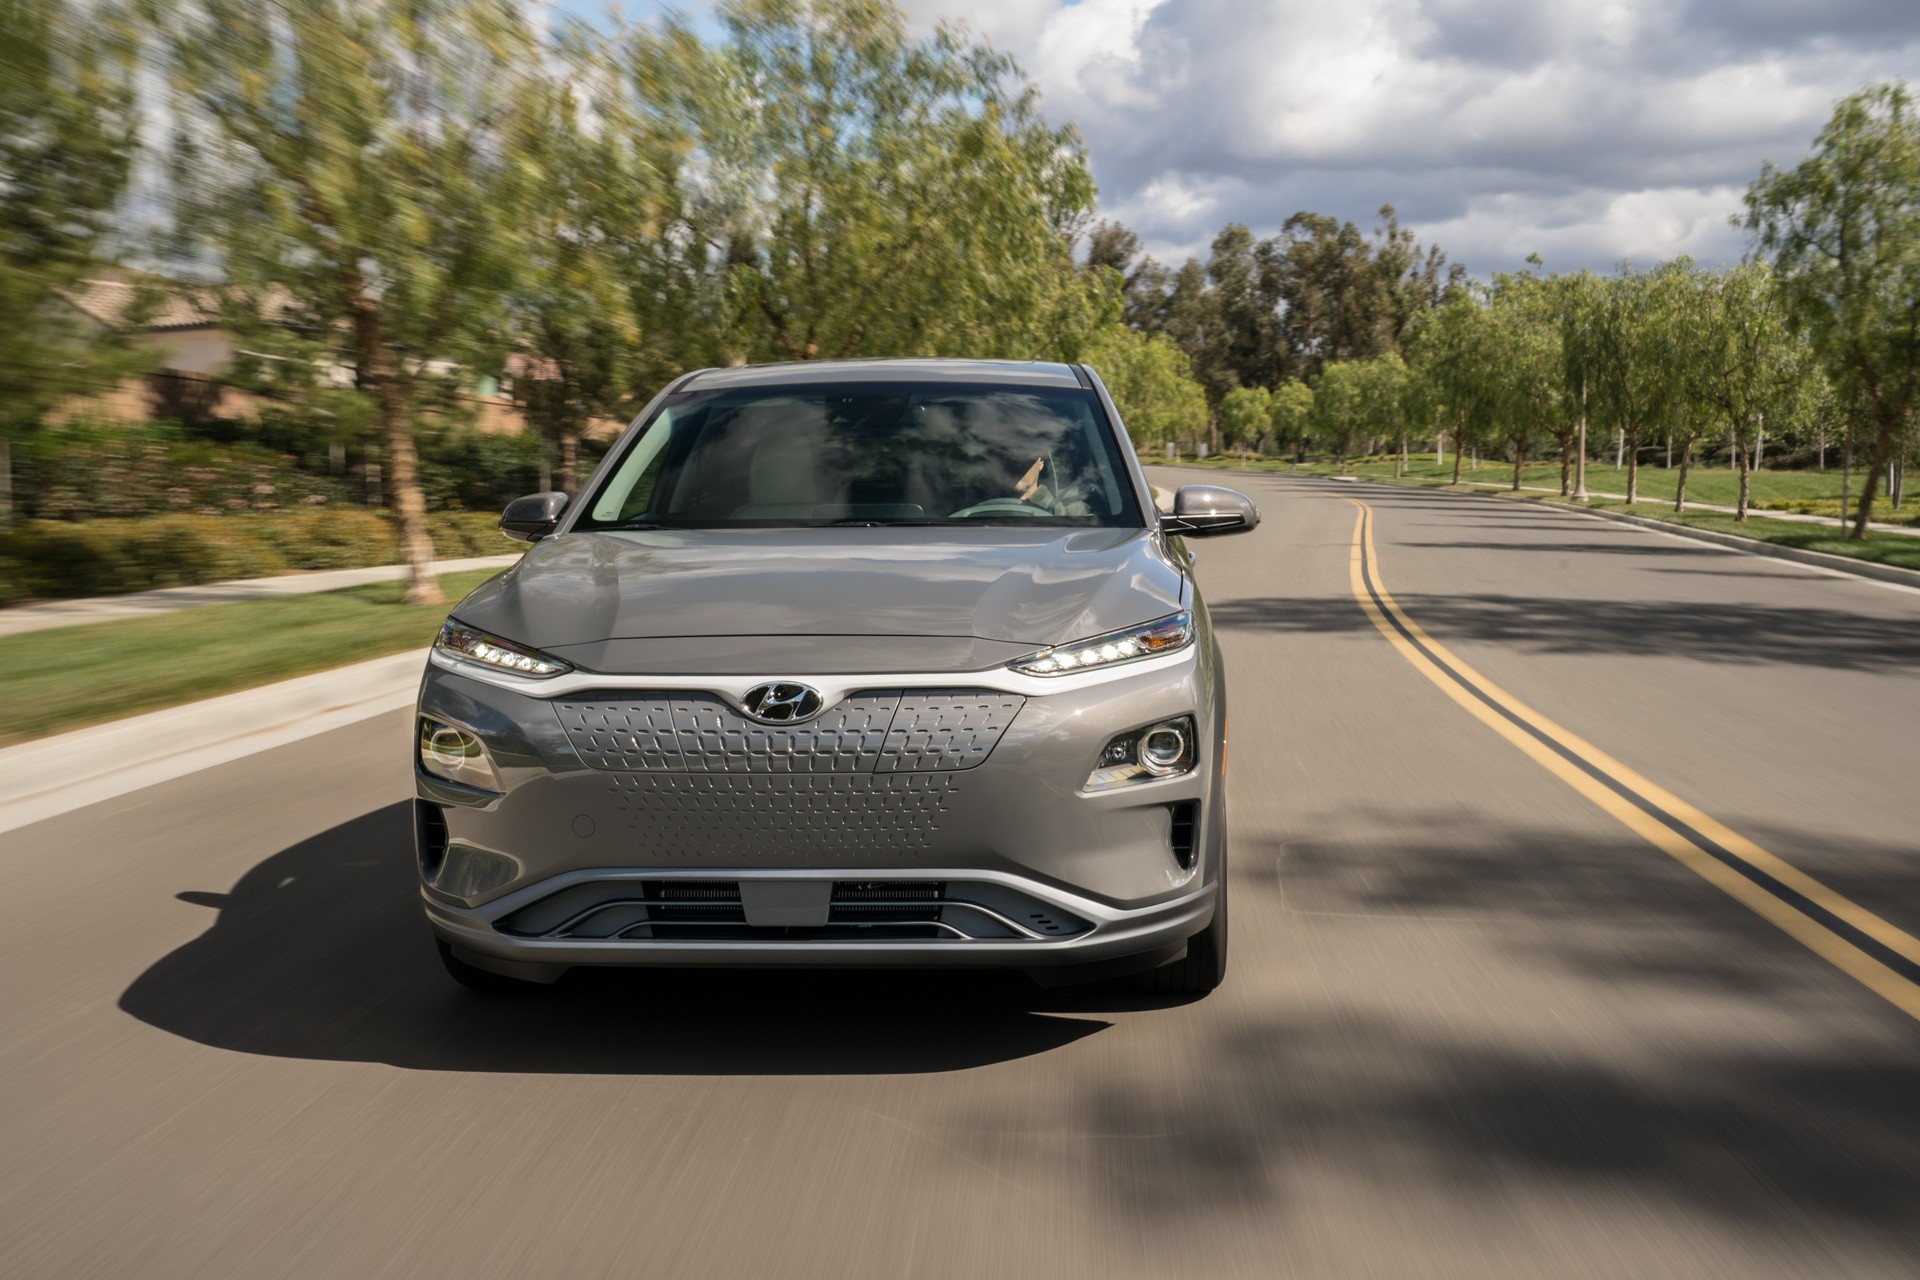 Hyundai Kona Electric Does 0 to 100 KPH in 7.1 Seconds in ...